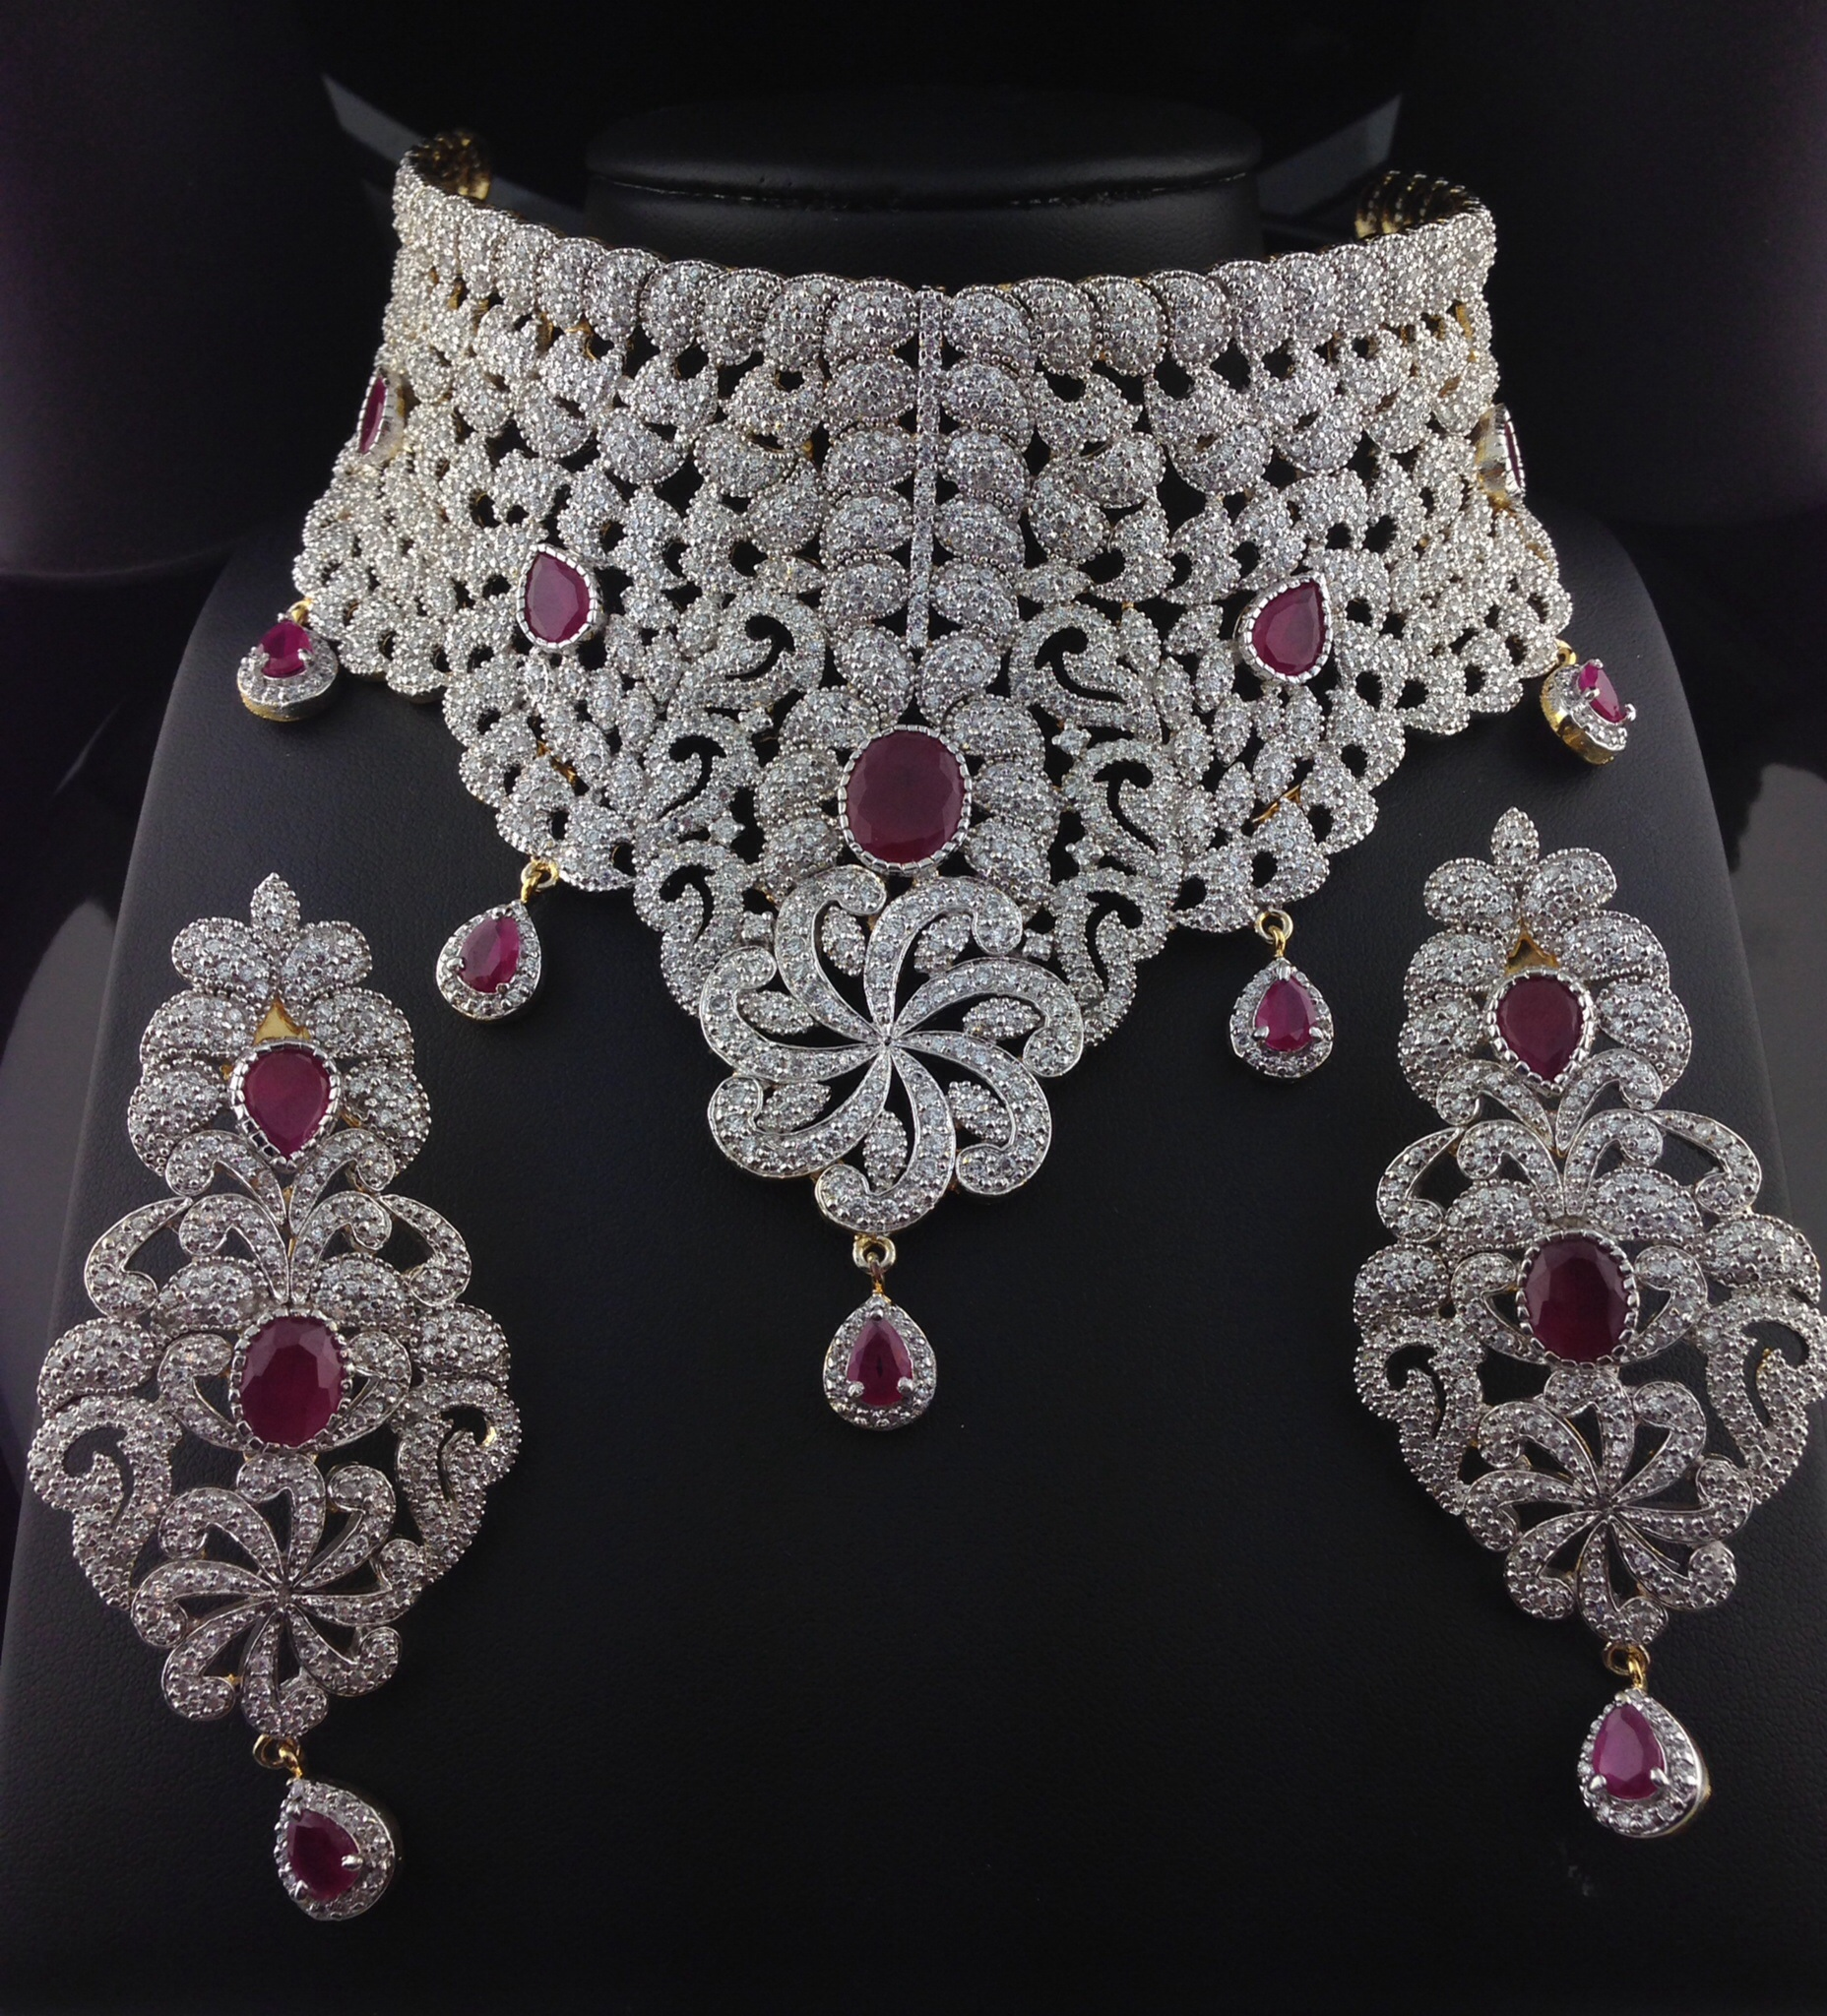 indian best jewels collection reddy necklace jewellery by from images royalty tanishq diamond jewelry you of the spandana to pinterest sappidi designs websites on